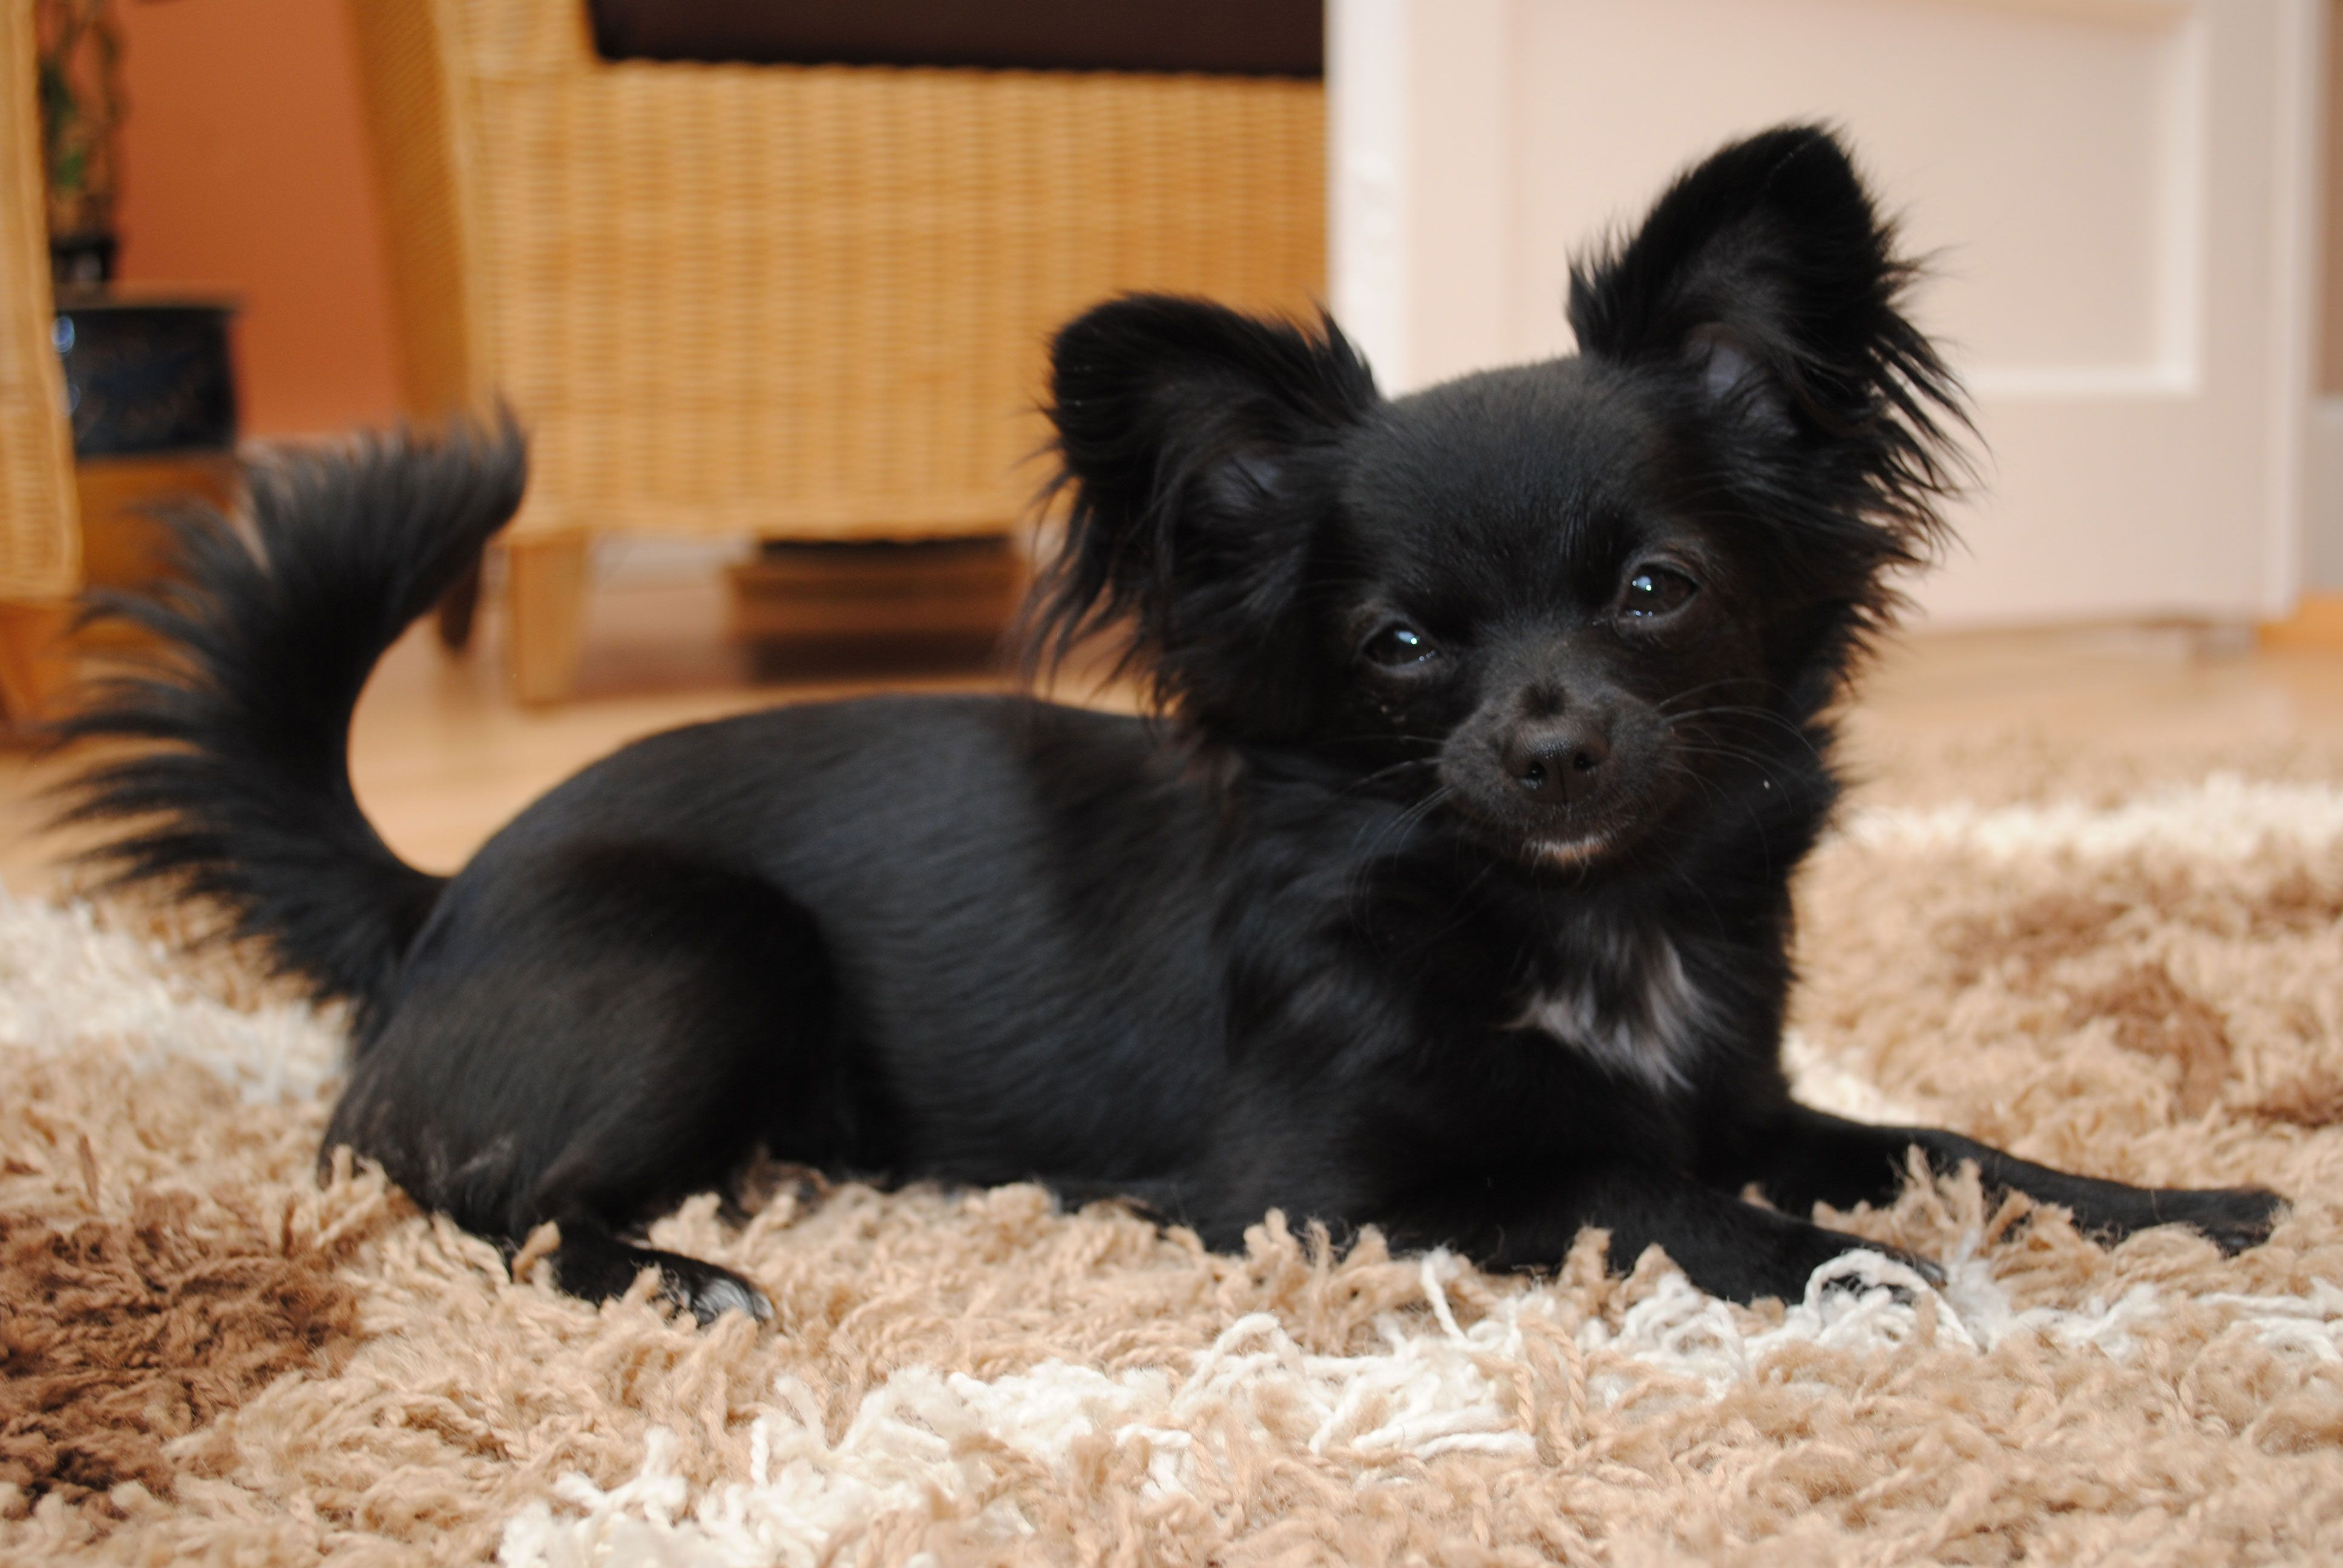 Chihuahua Dog Breed Information Pictures More Chihuahua Puppies Chihuahua Dogs Black Chihuahua